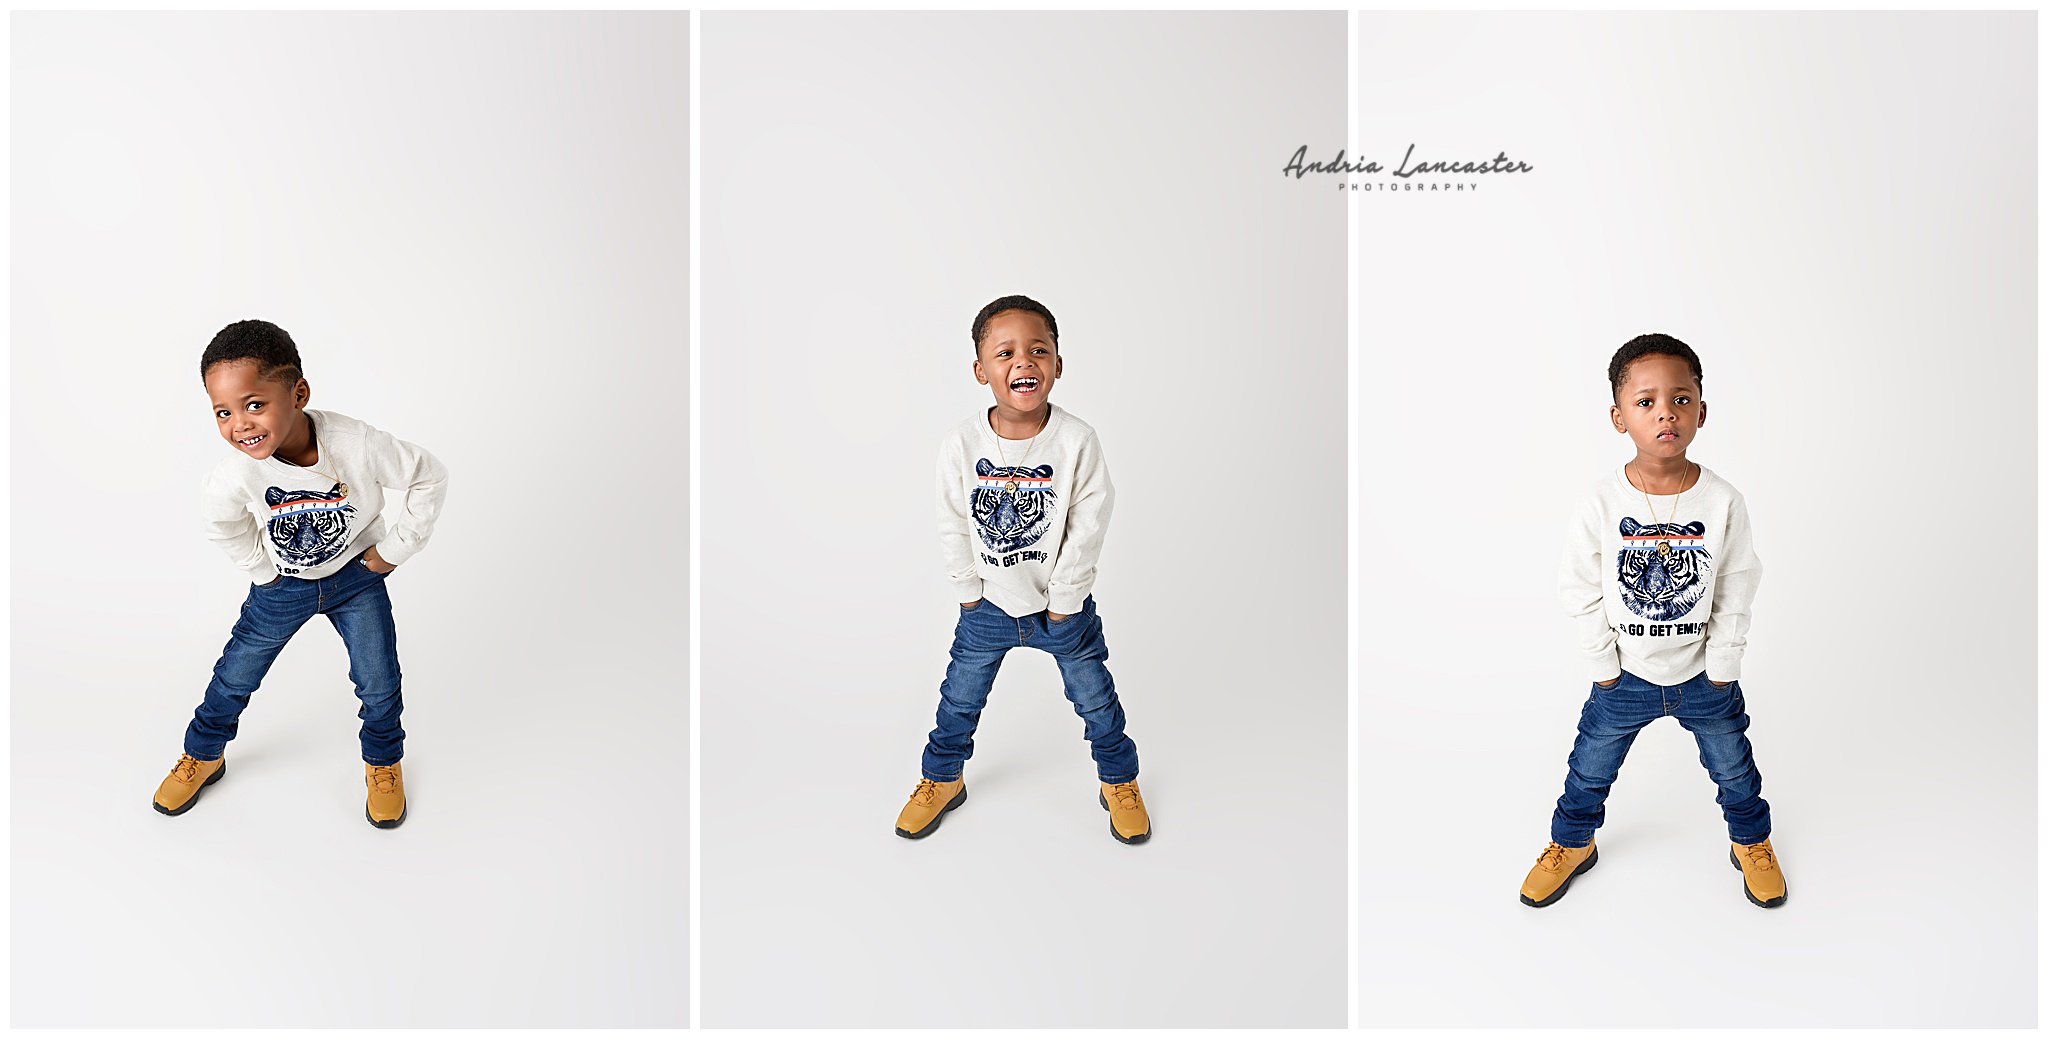 3 poses side by side Brooklyn child photography